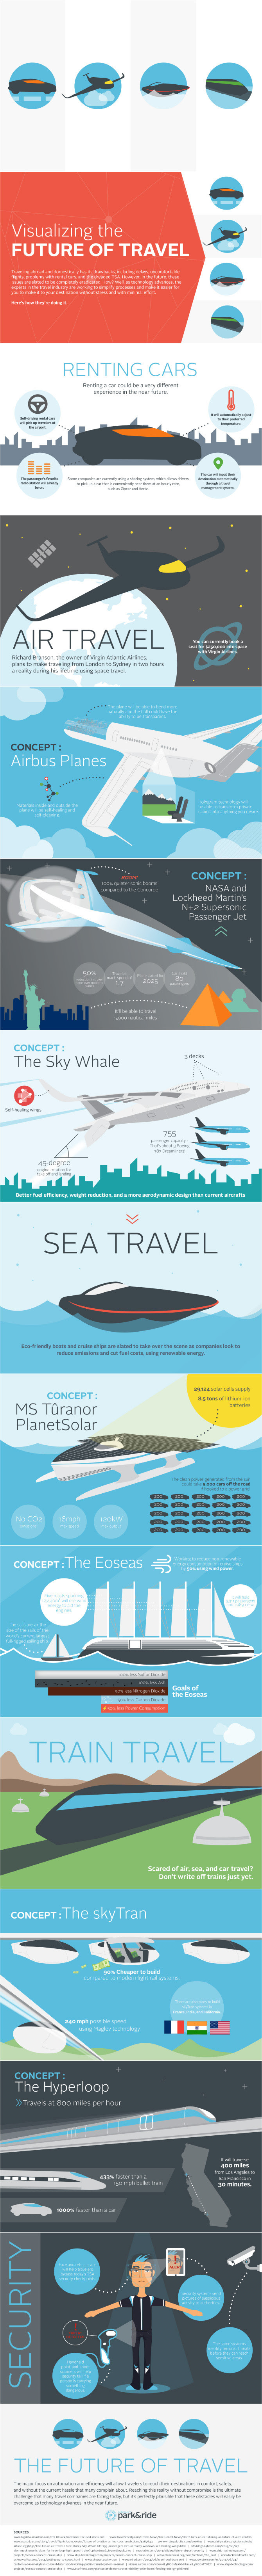 Infographic: Visualizing The Future of Travel